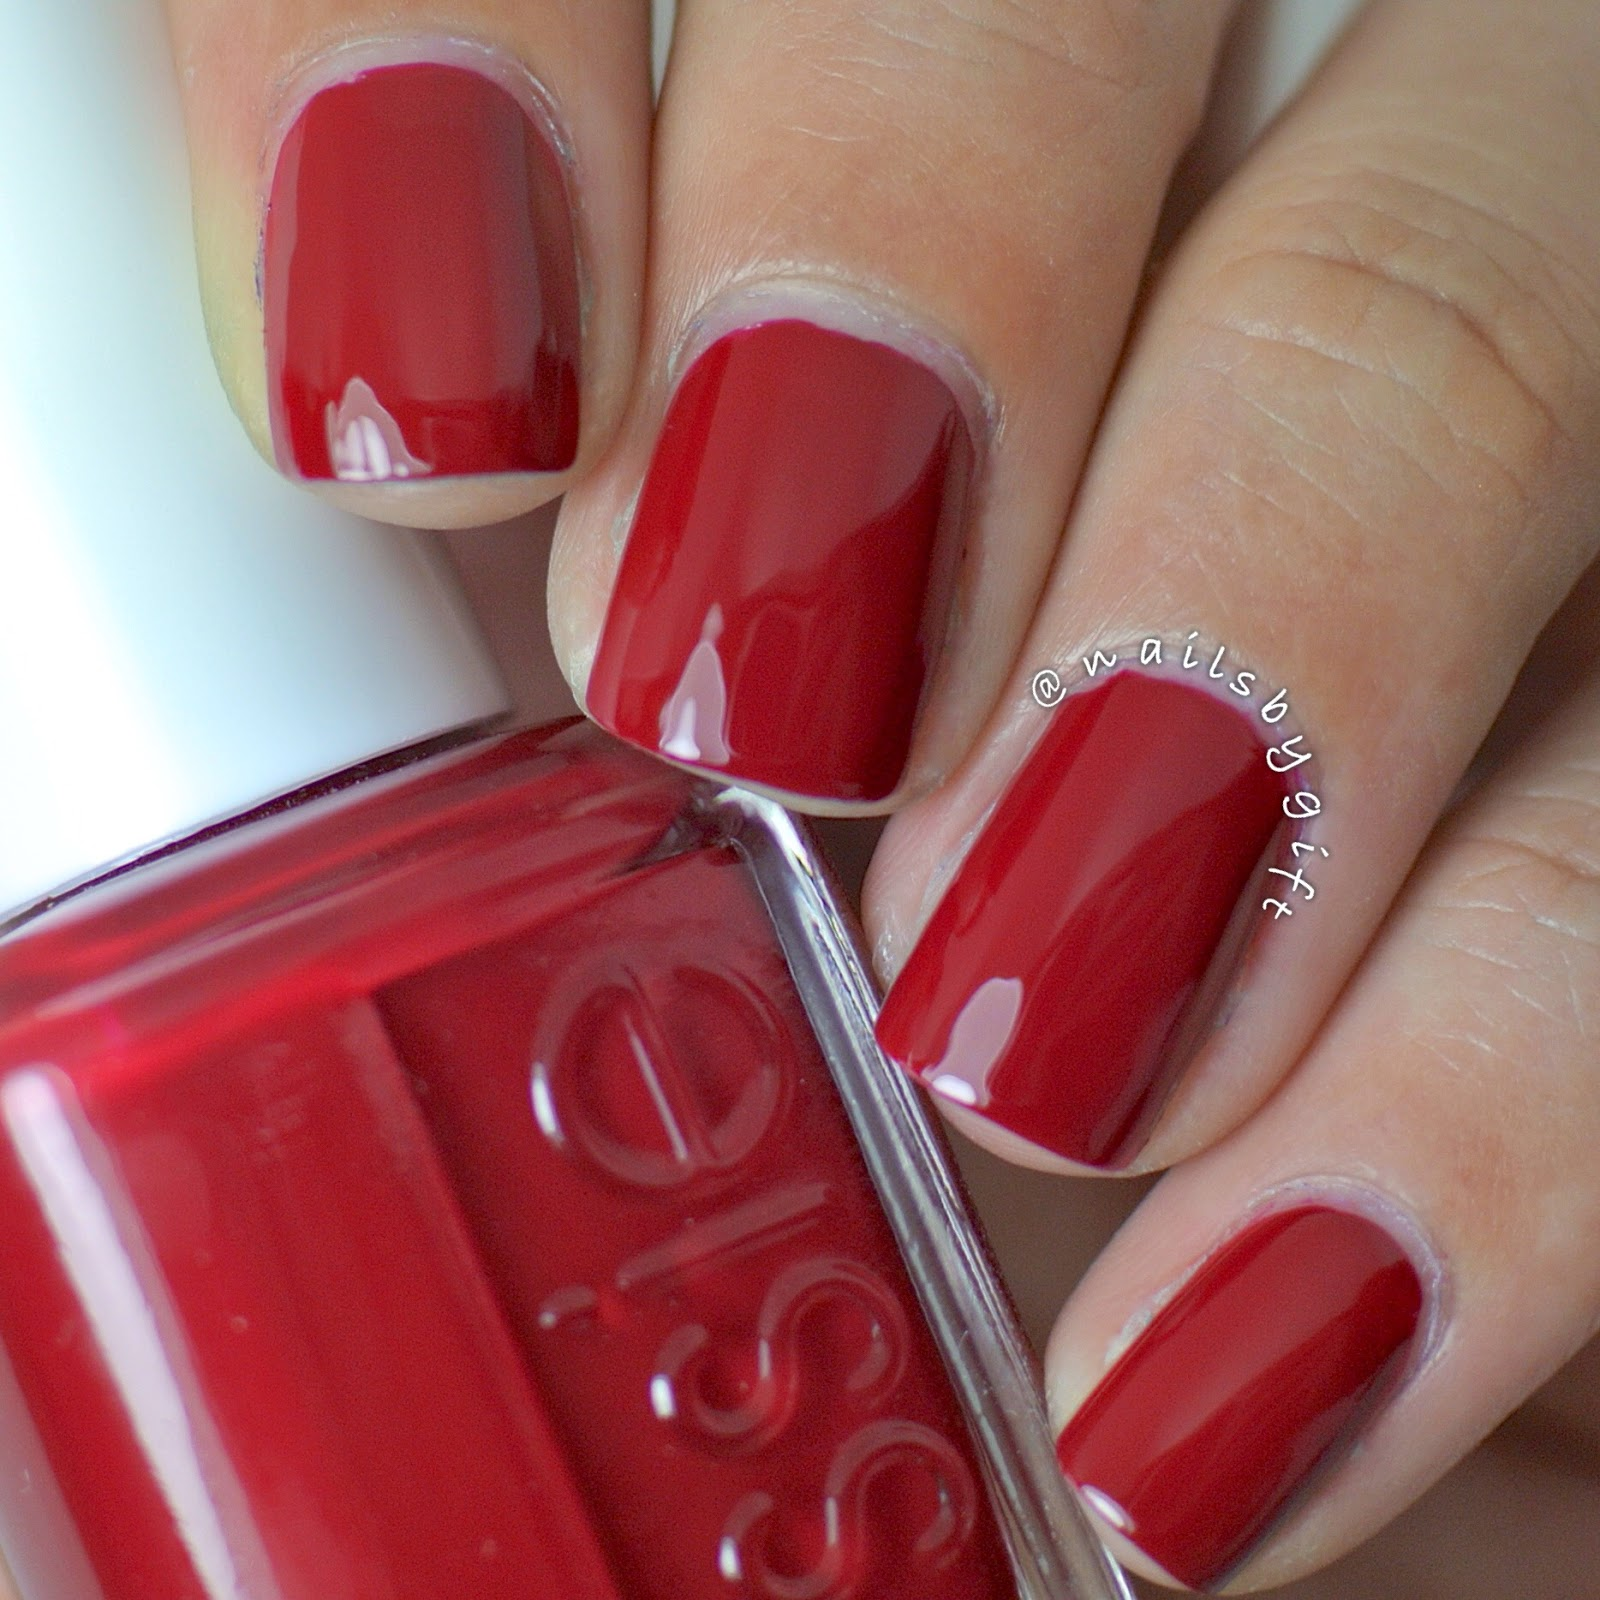 Nails by Gift: Essie Fall 2014 Dress To Kilt Collection